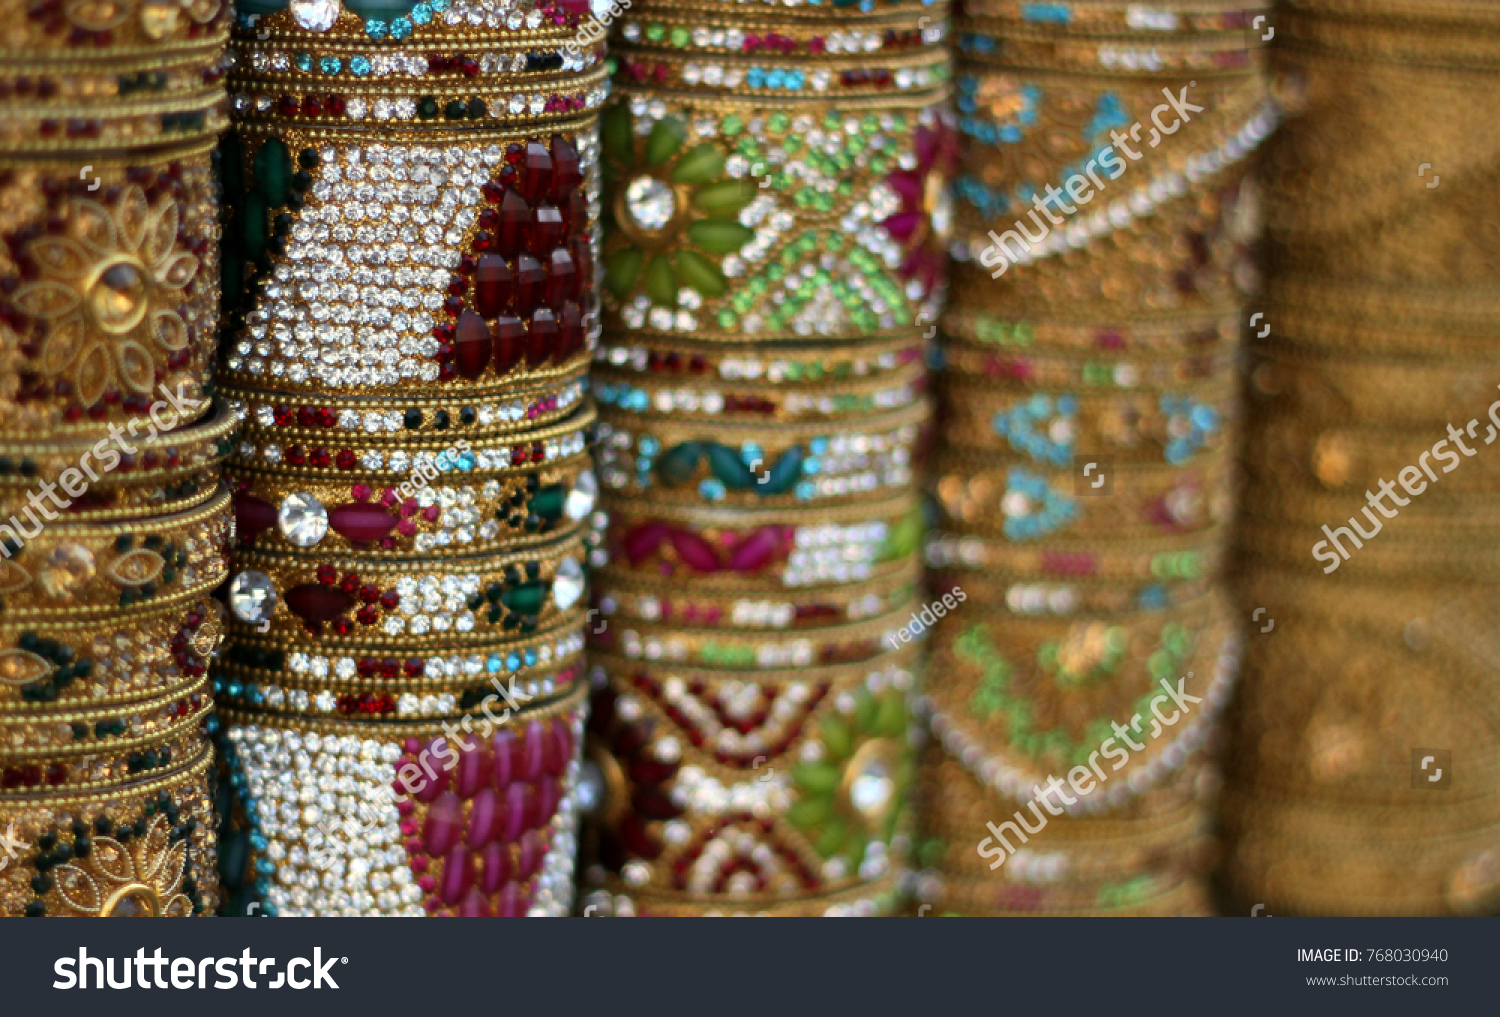 govt bangle suncity hyderabad shop near dealers bzdet pictures langar school house sana bangles photos